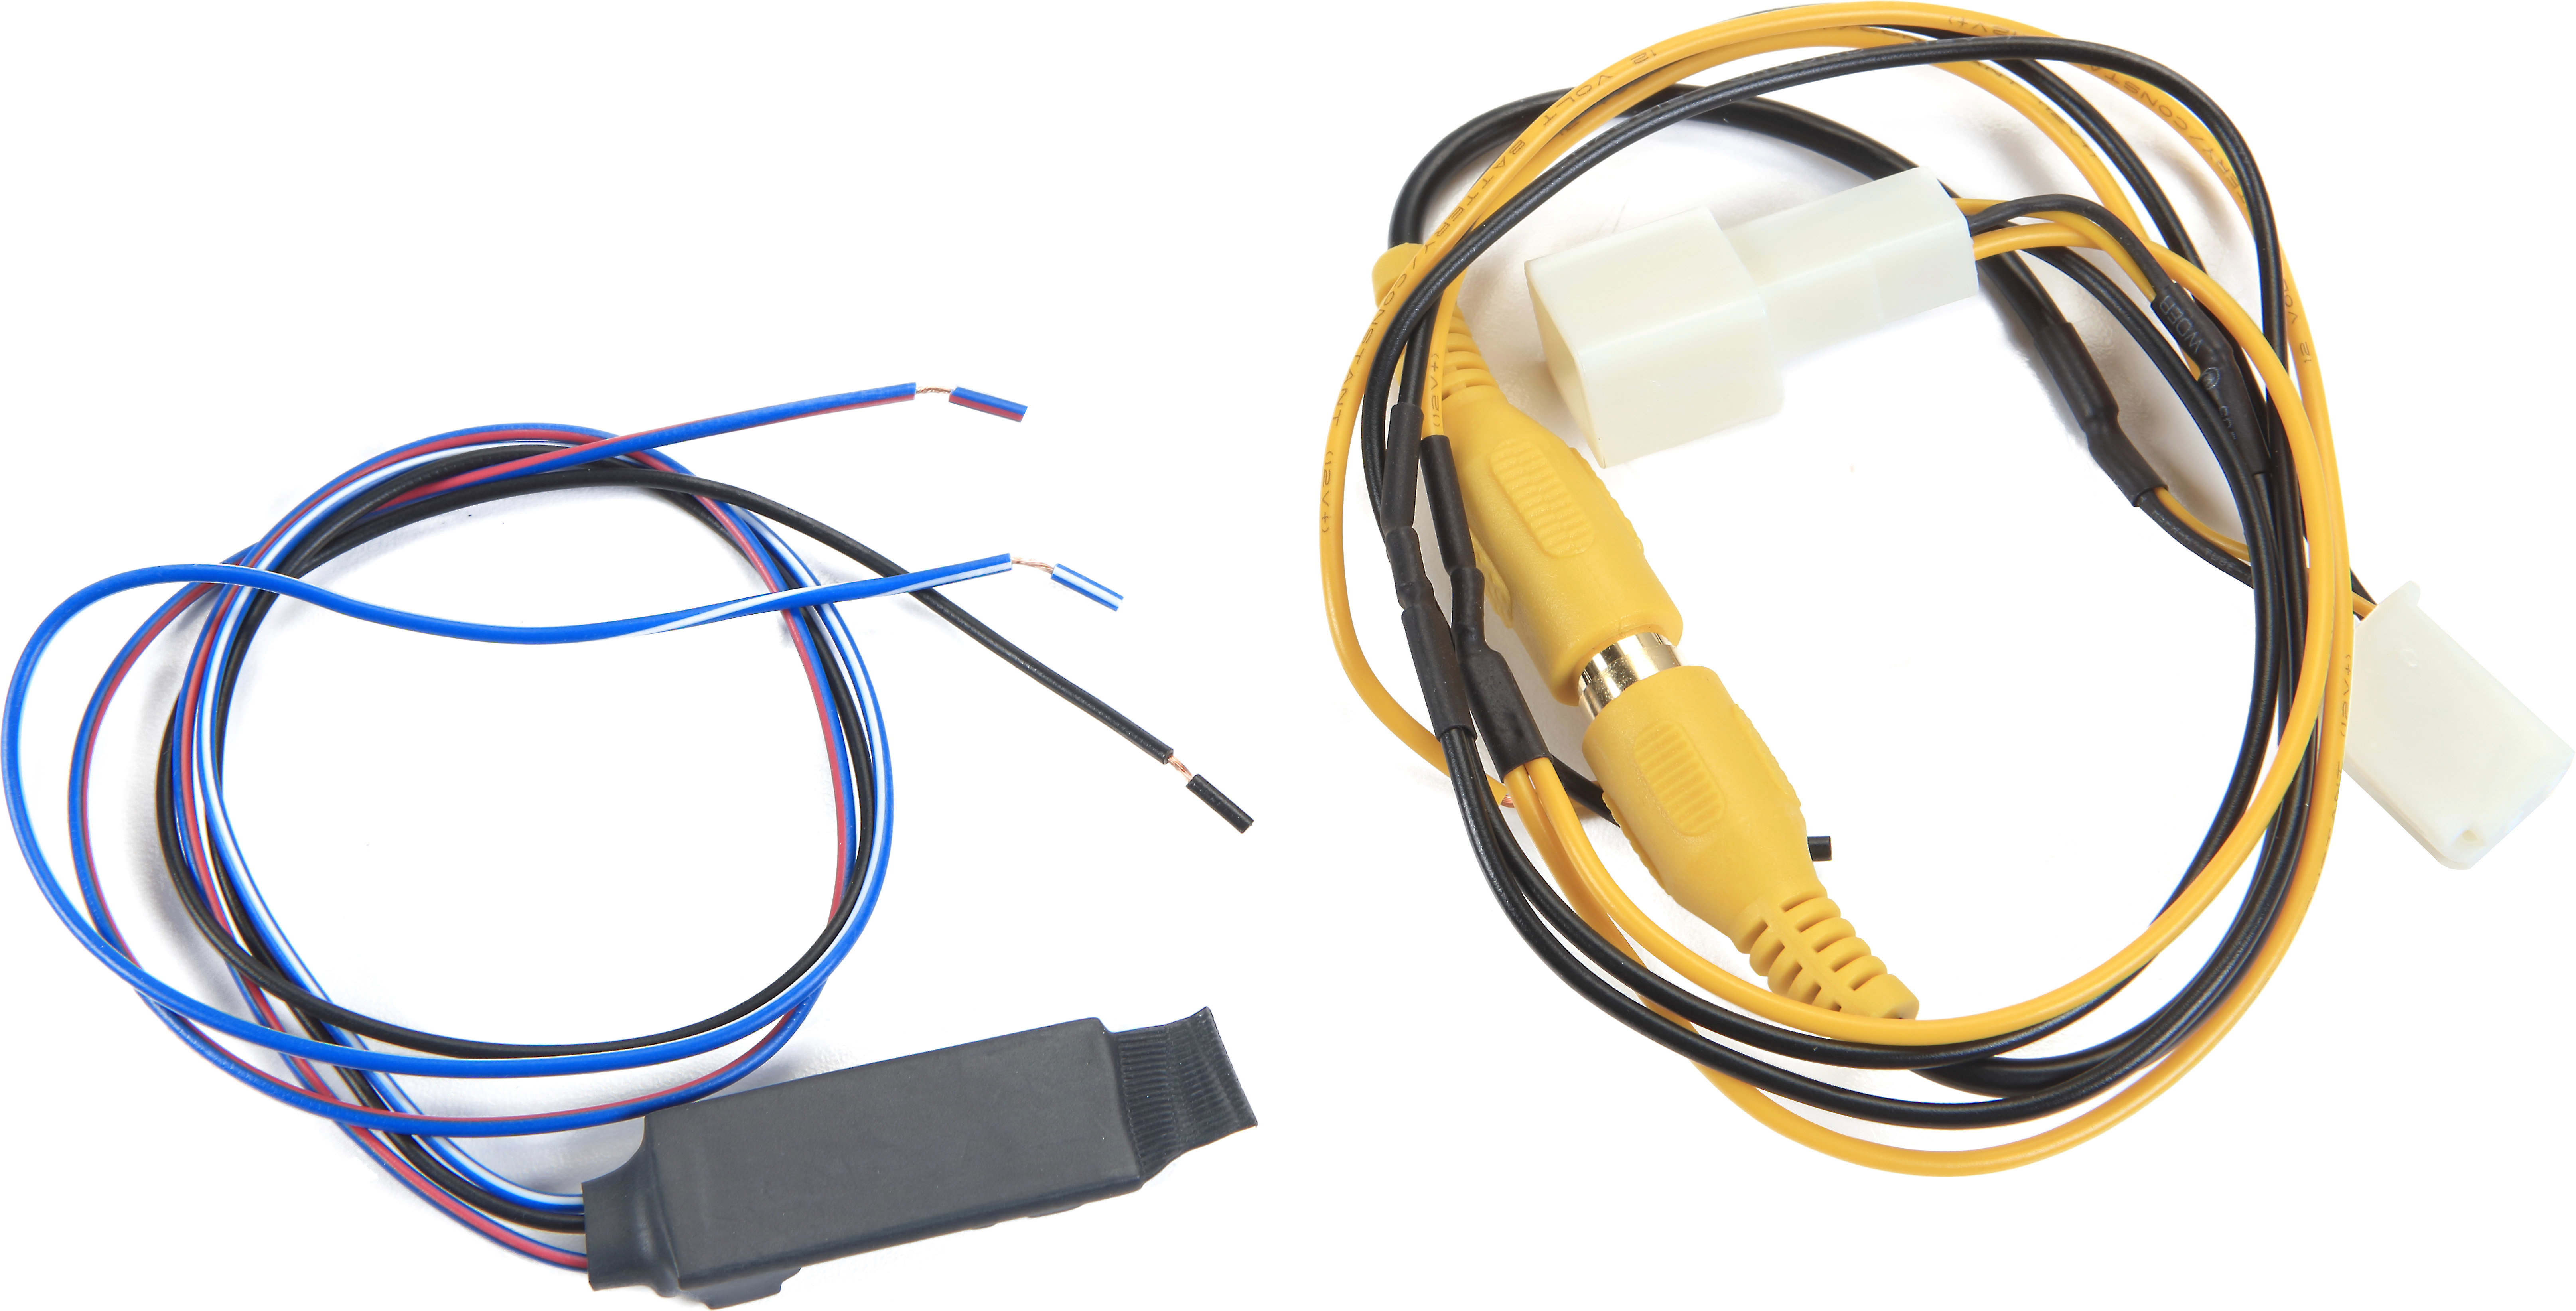 Backup Camera Wiring Diagram For Acura Mdx on